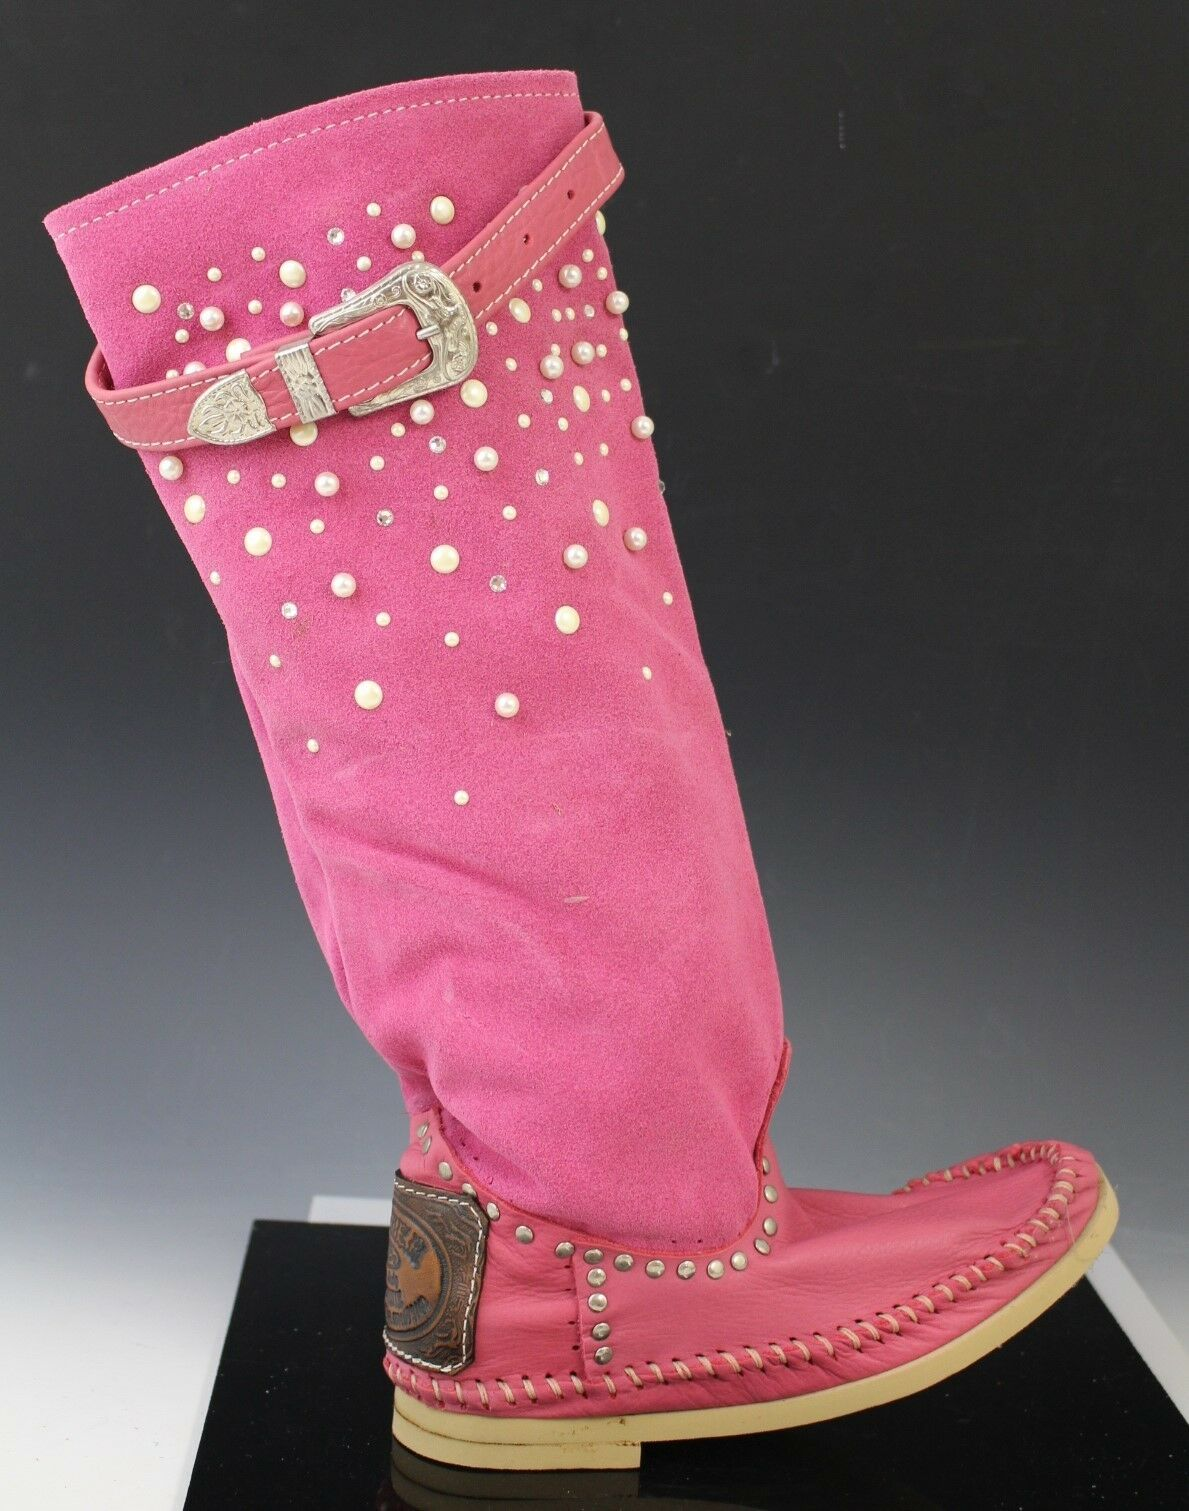 Hector Italian Leather Studded Moccasin Stiefel schuhe SCAMOSCIATO Rosa US 7